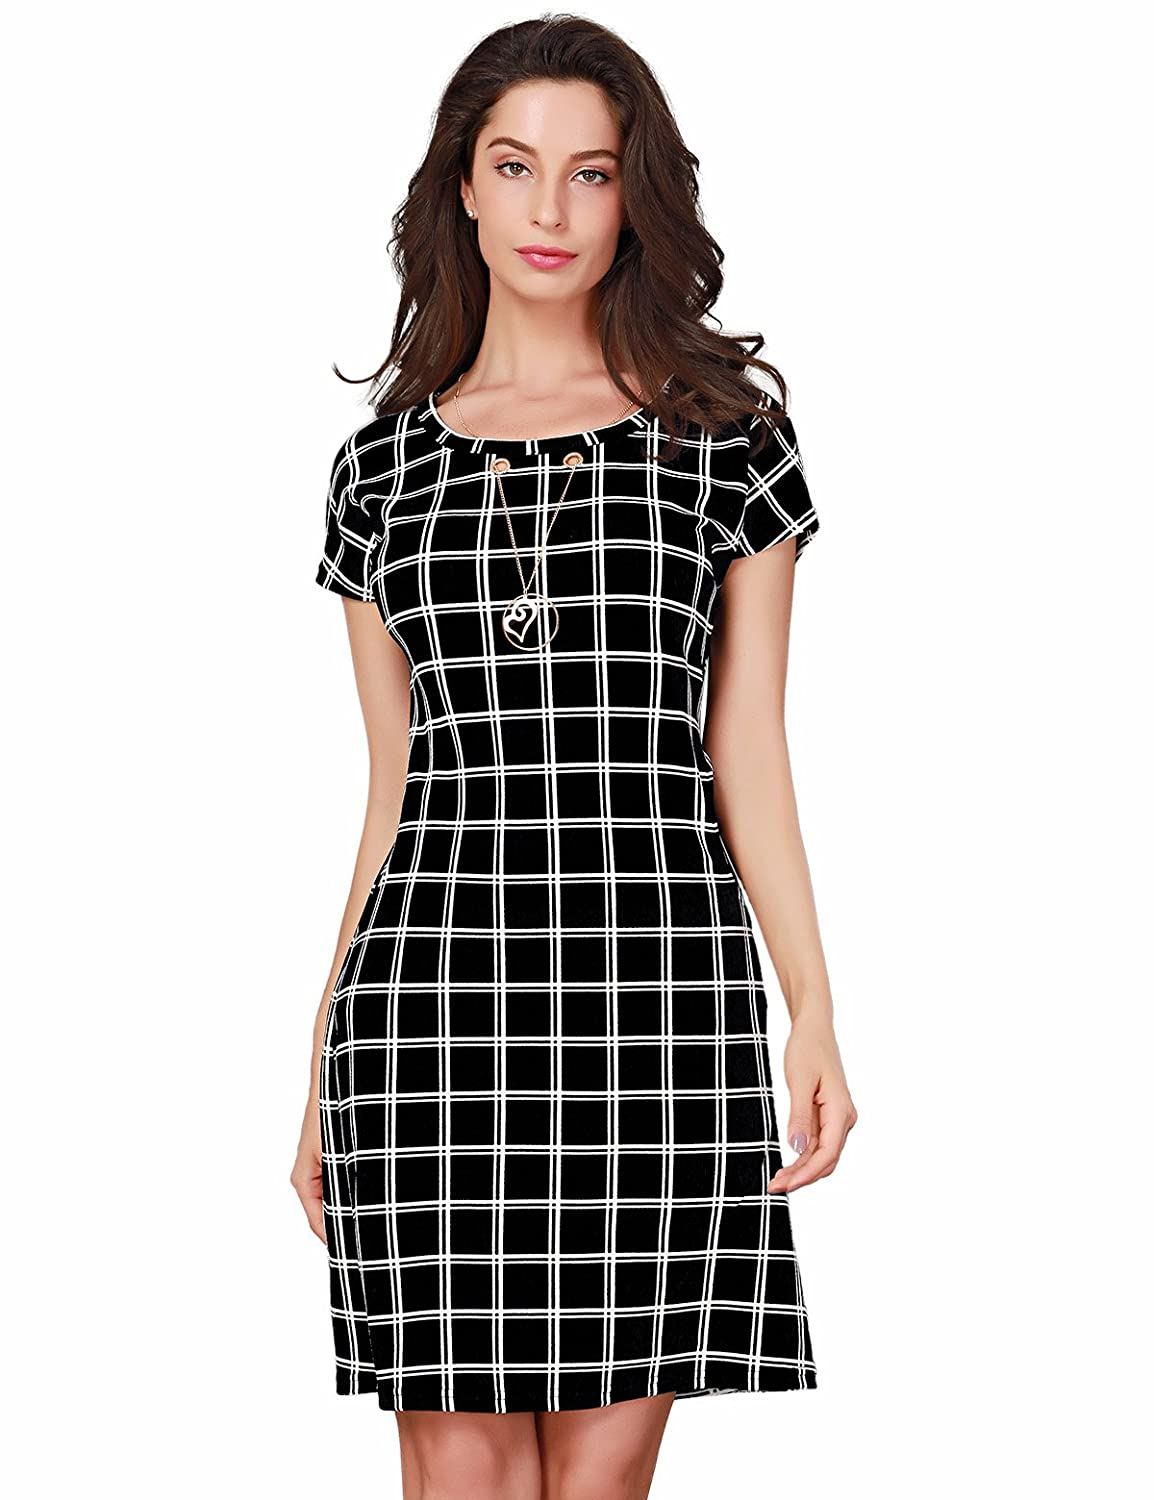 Black Triplewood Women's Elegant Short Sleeve Wear to Work Casual Business Check Dress with Pocket